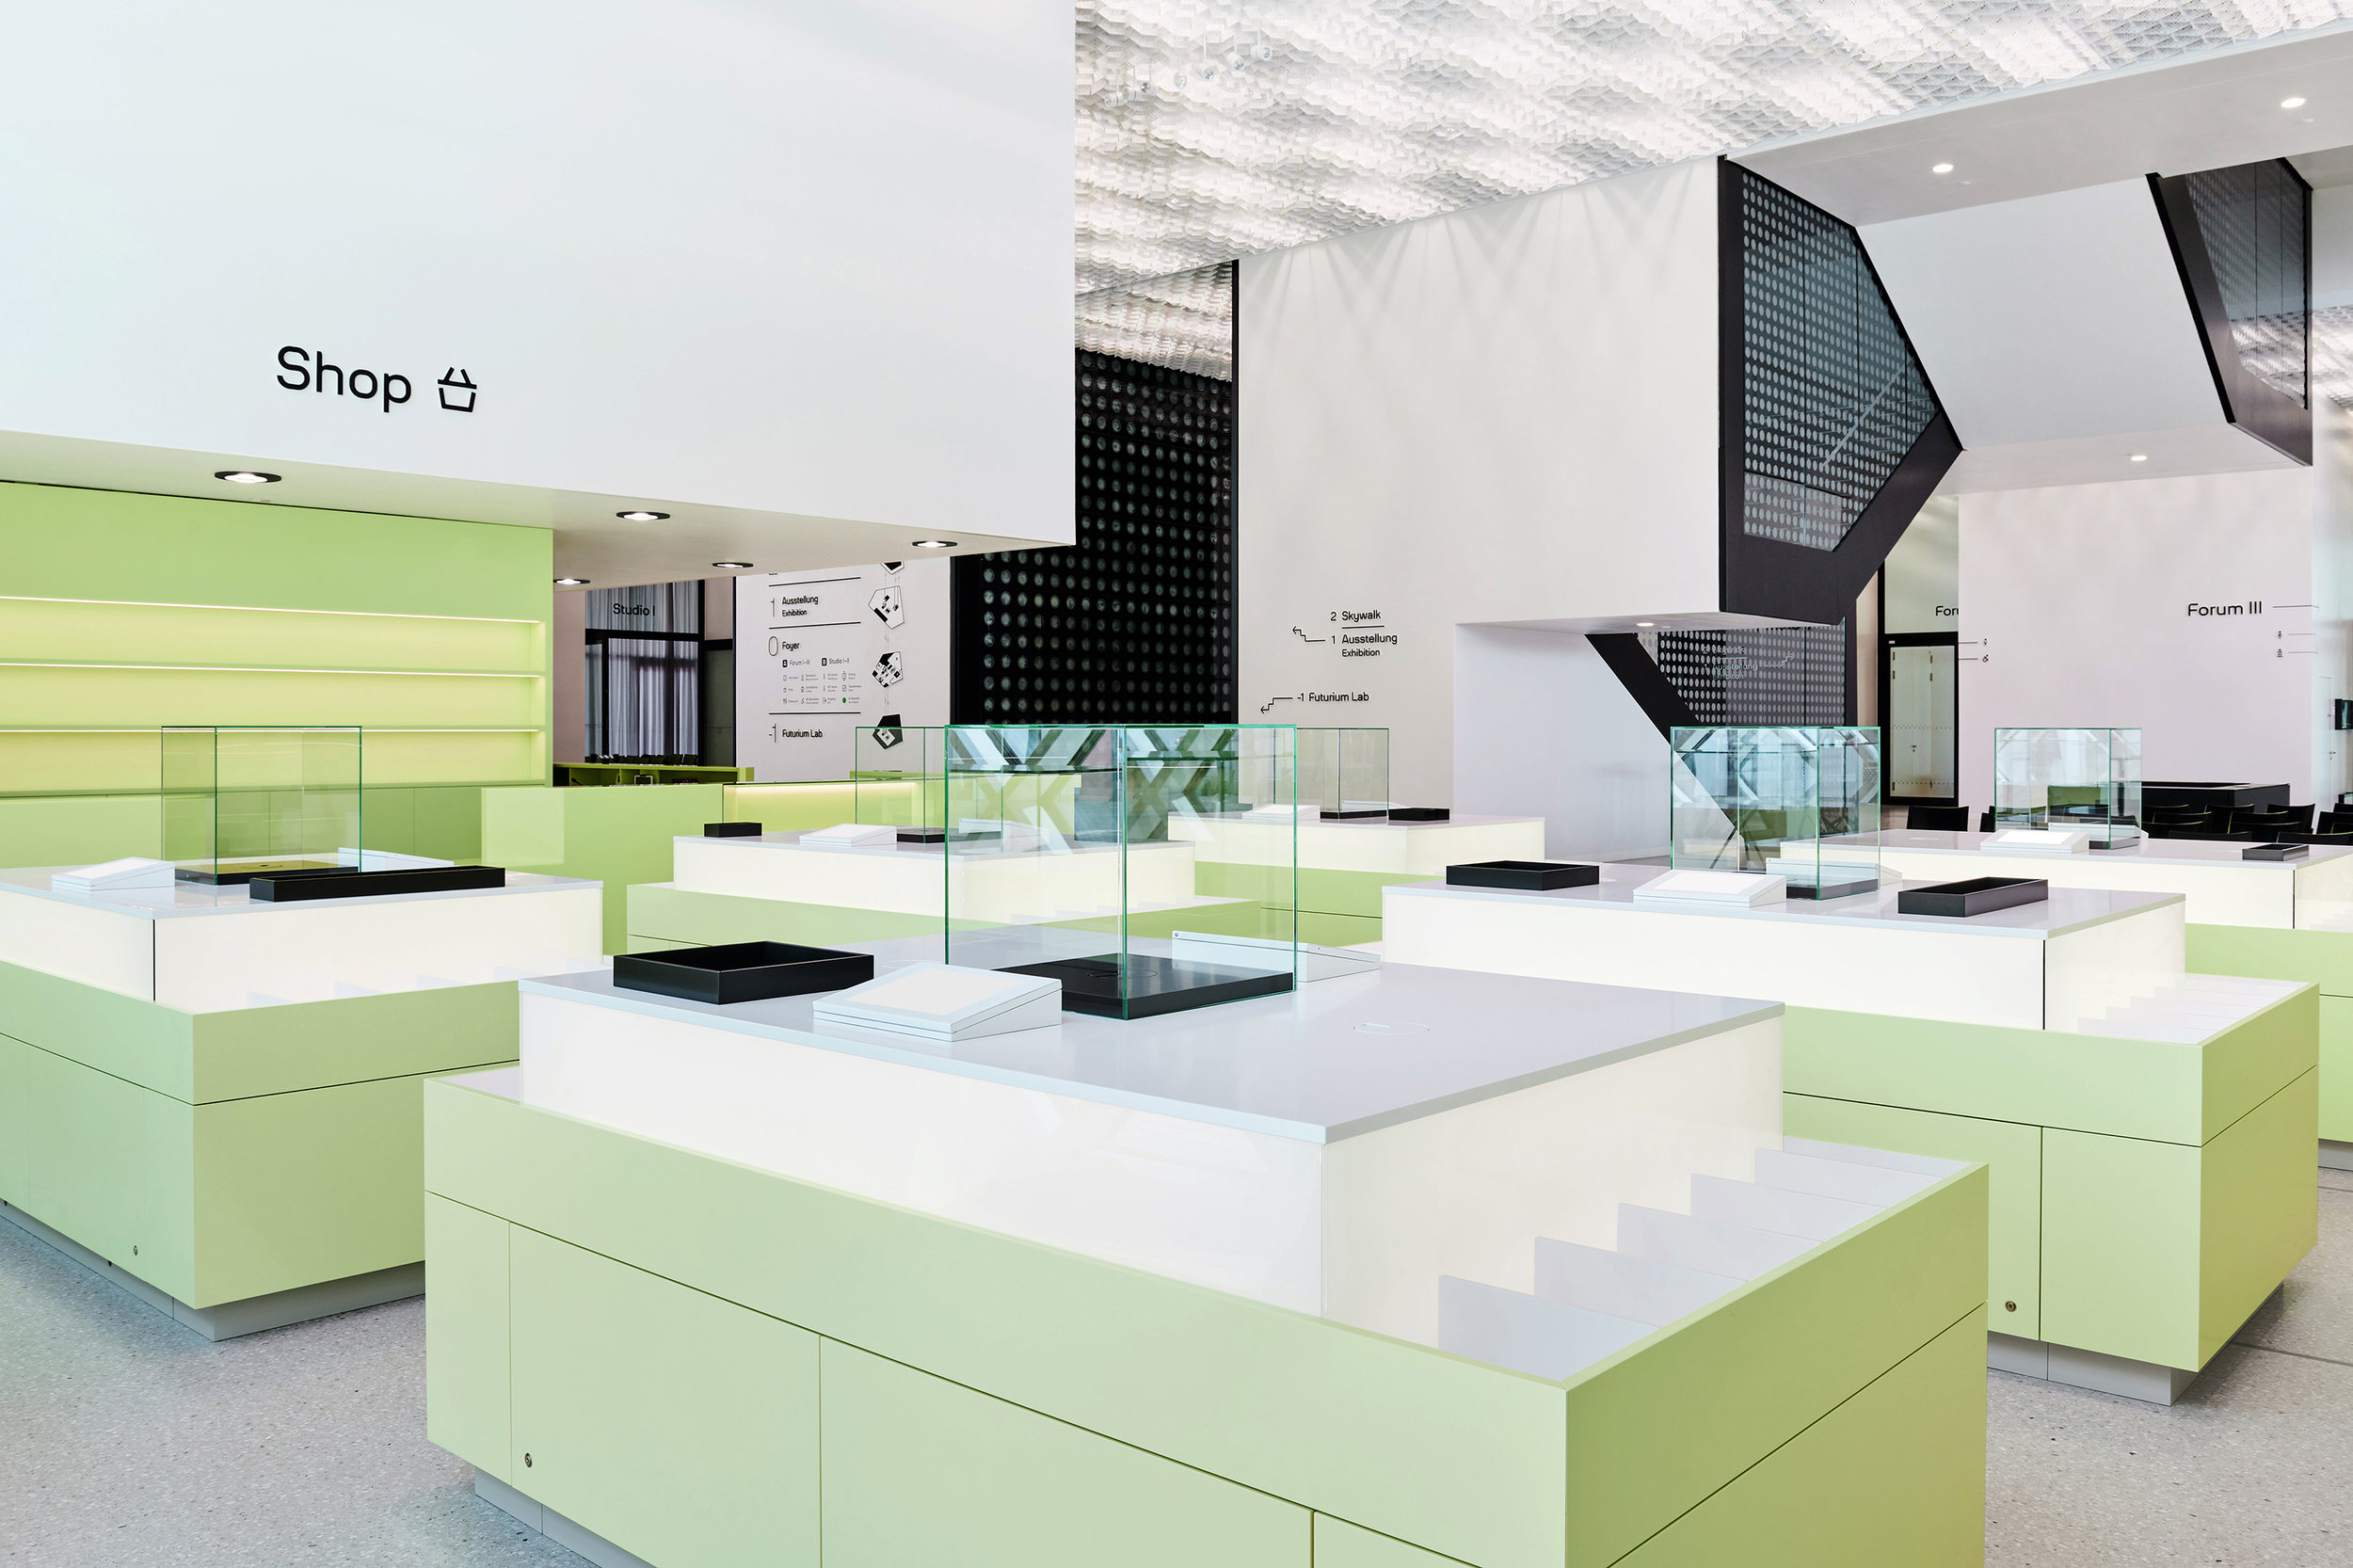 futurium_retail-interior-design_coordination-berlin-04.jpg